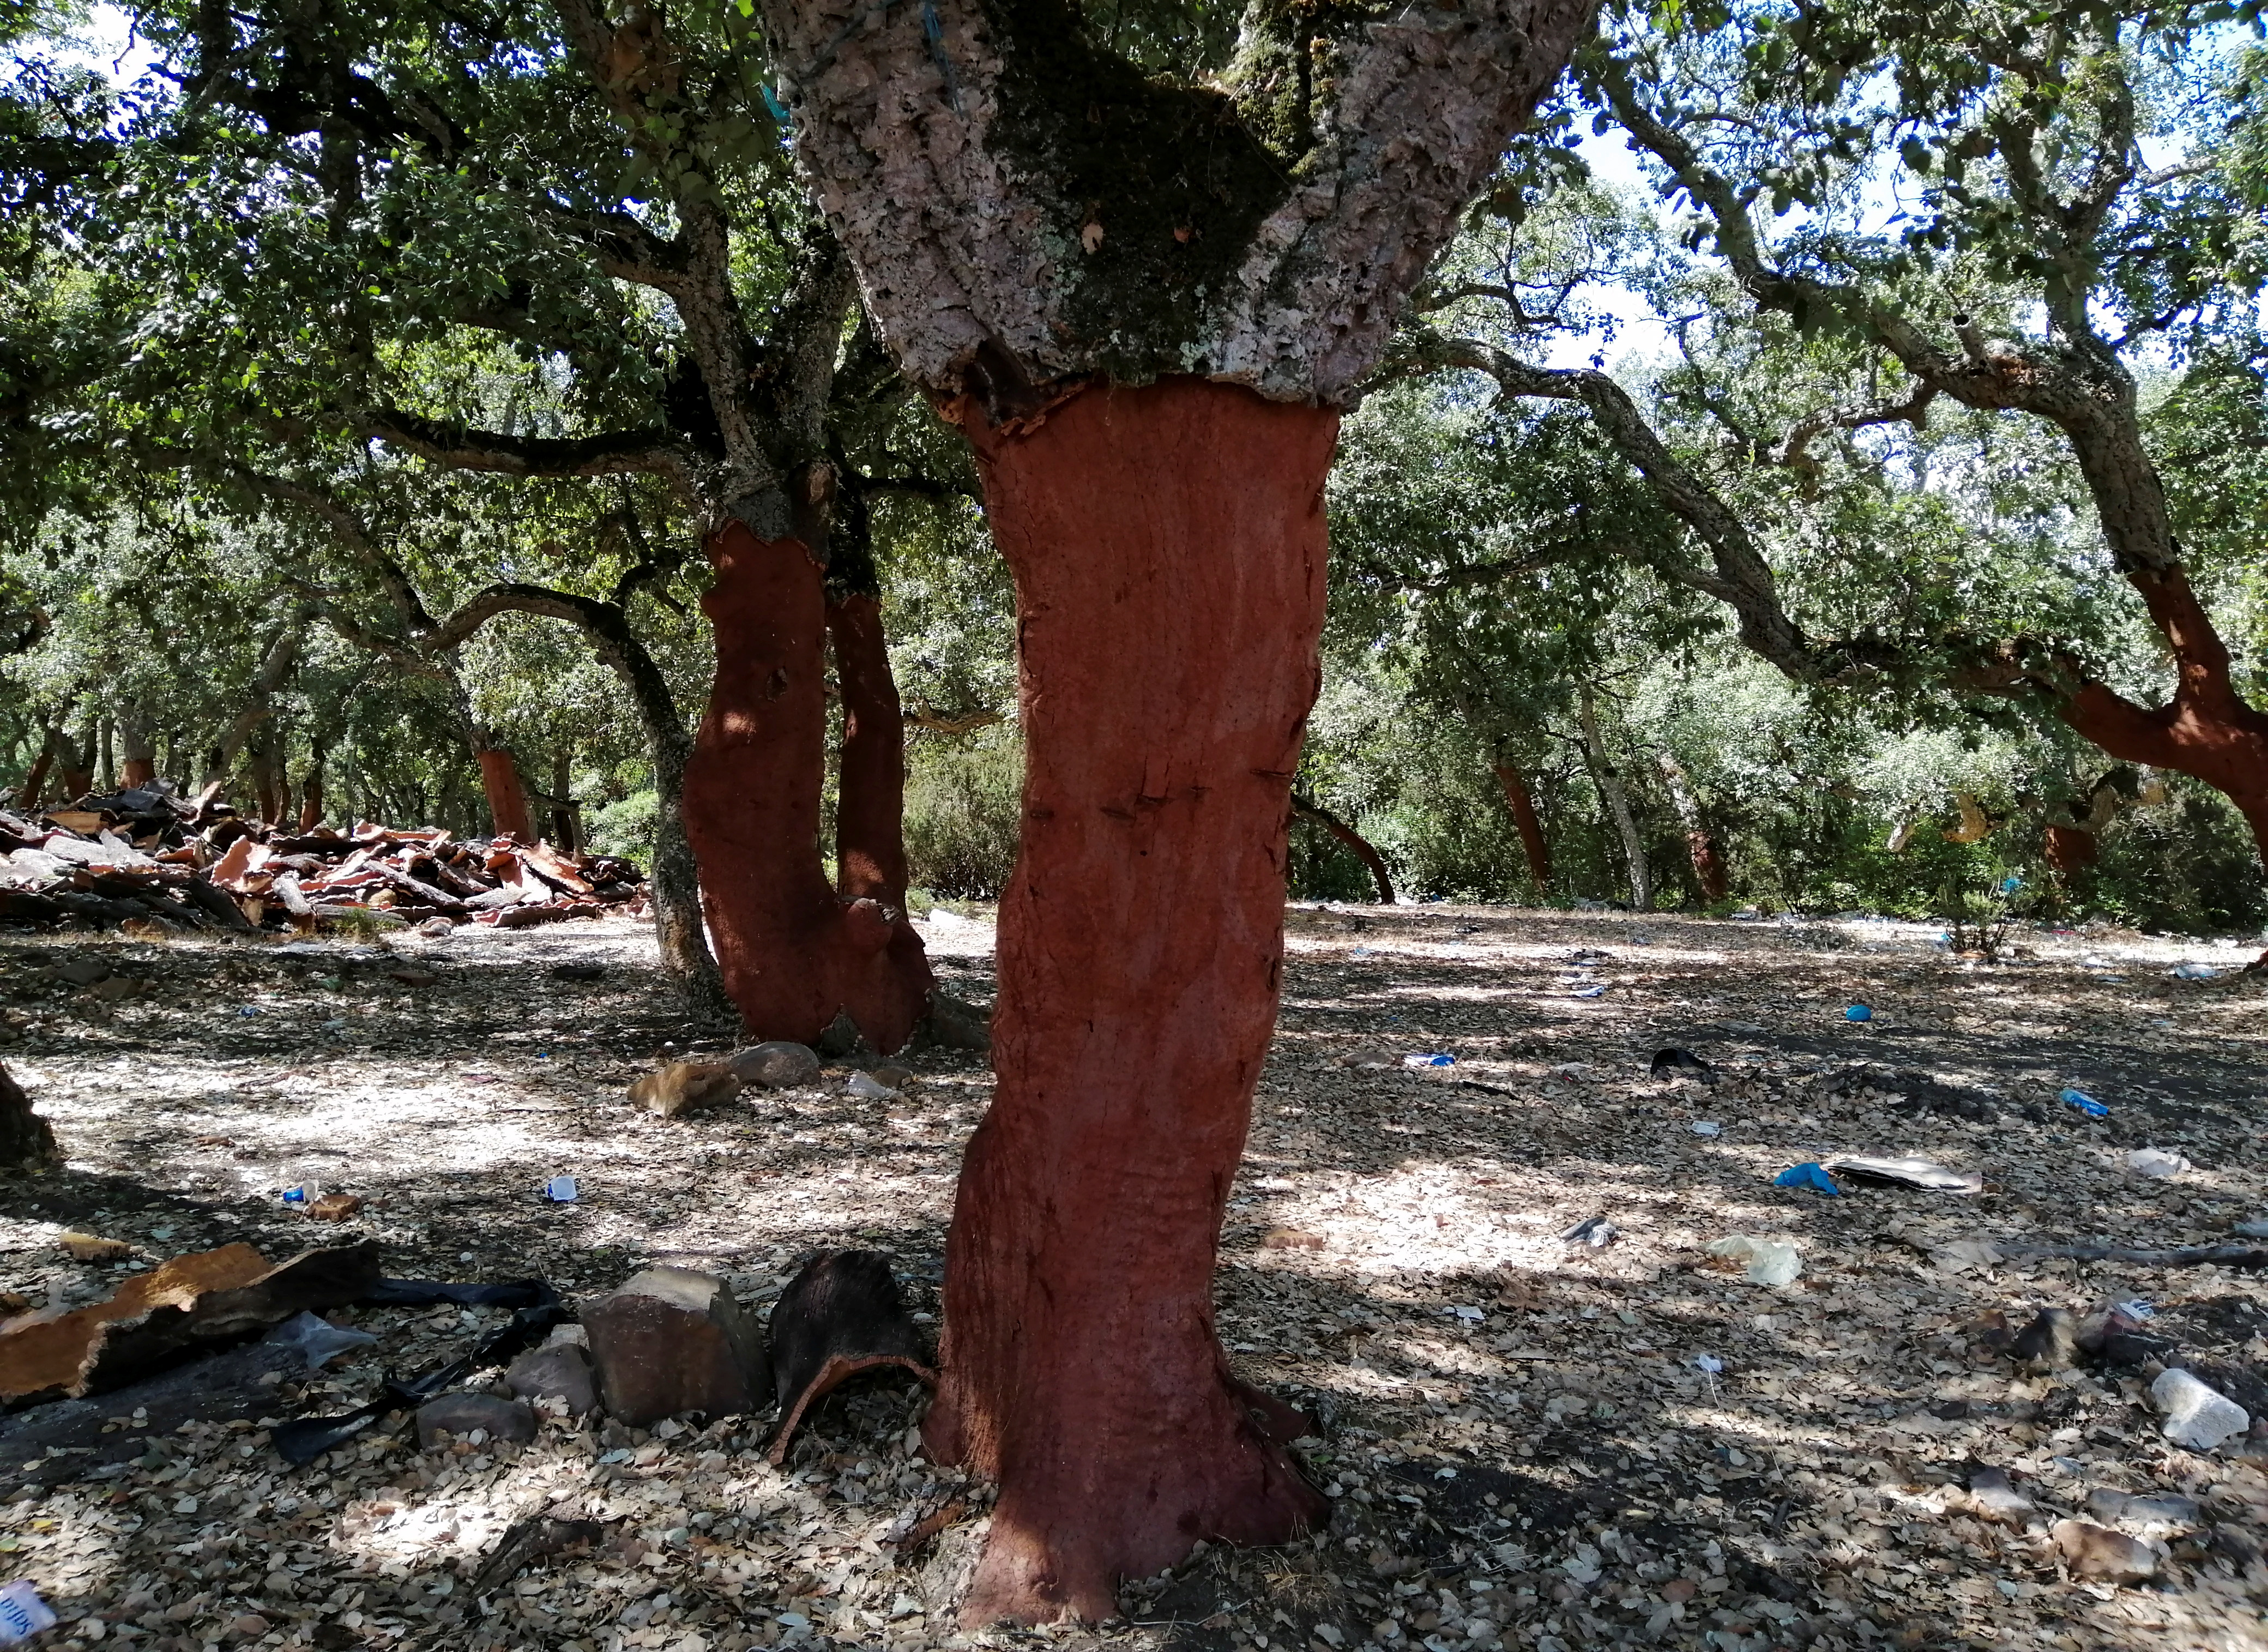 The trunk of a cork tree is seen after having its cork bark harvested in Ain Draham in Jendouba, Tunisia, September 10, 2021. Picture taken September 10, 2021. REUTERS/Jihed Abidellaoui